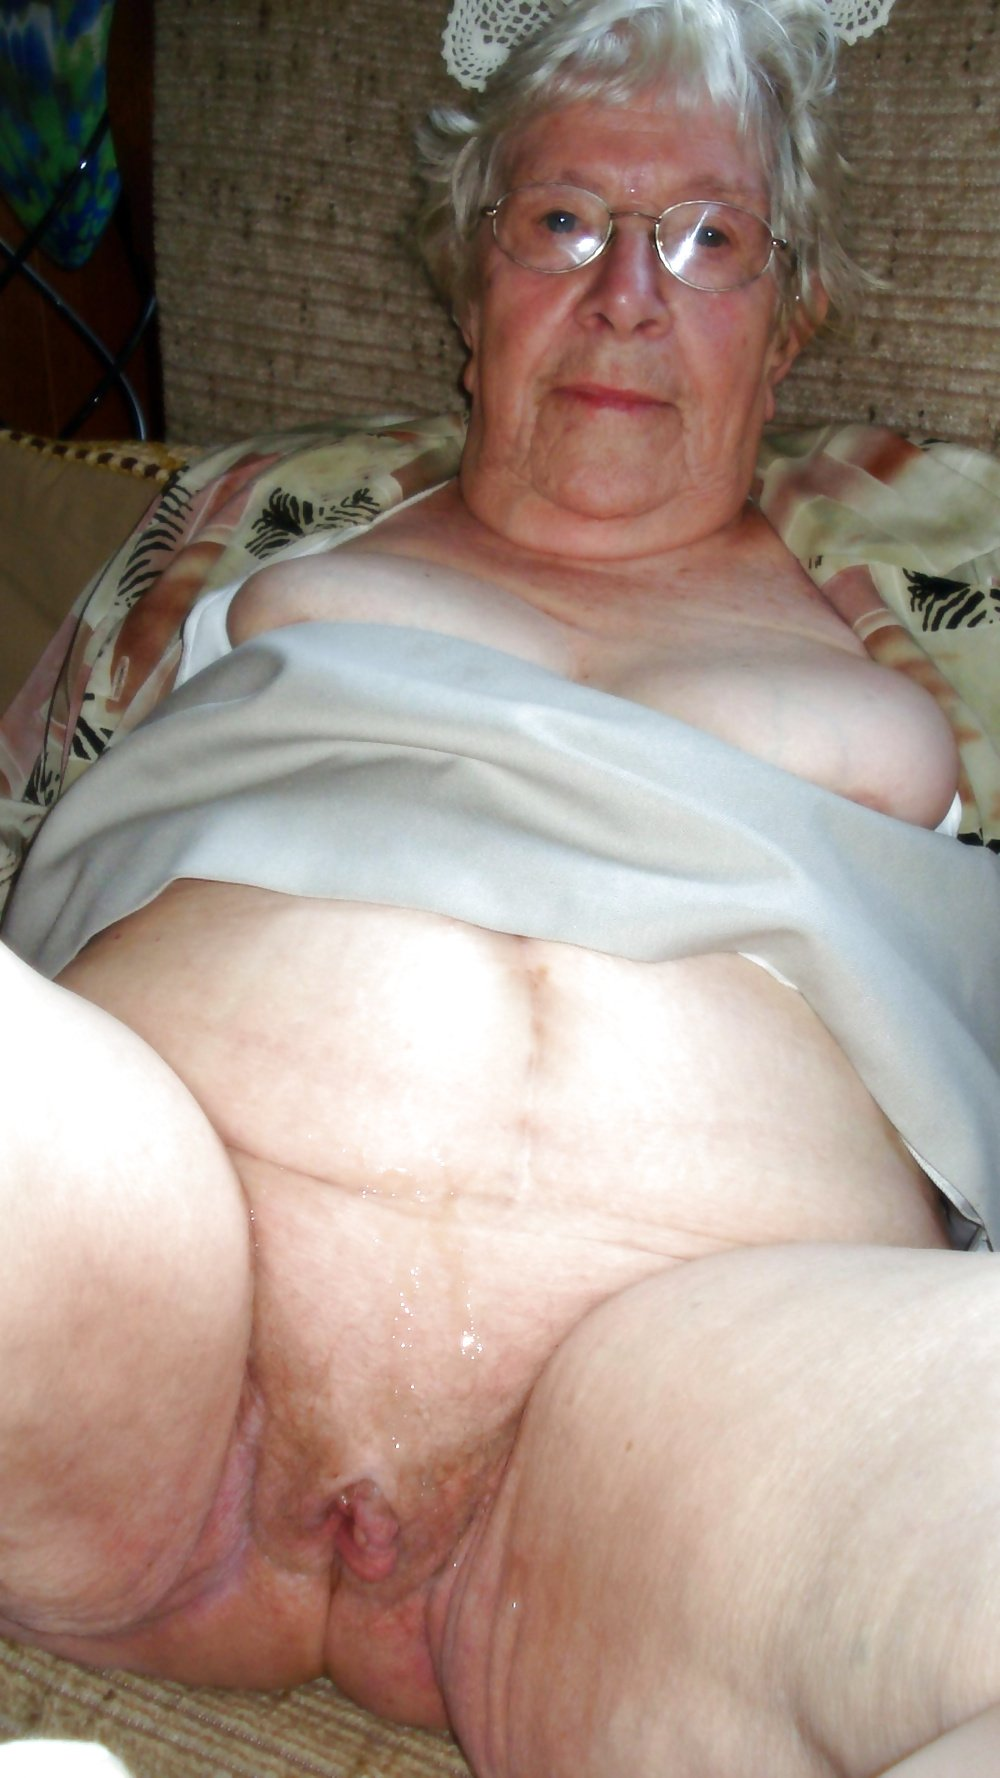 Free Mature Self Picss Adult New Pictures Free Site Comments 1